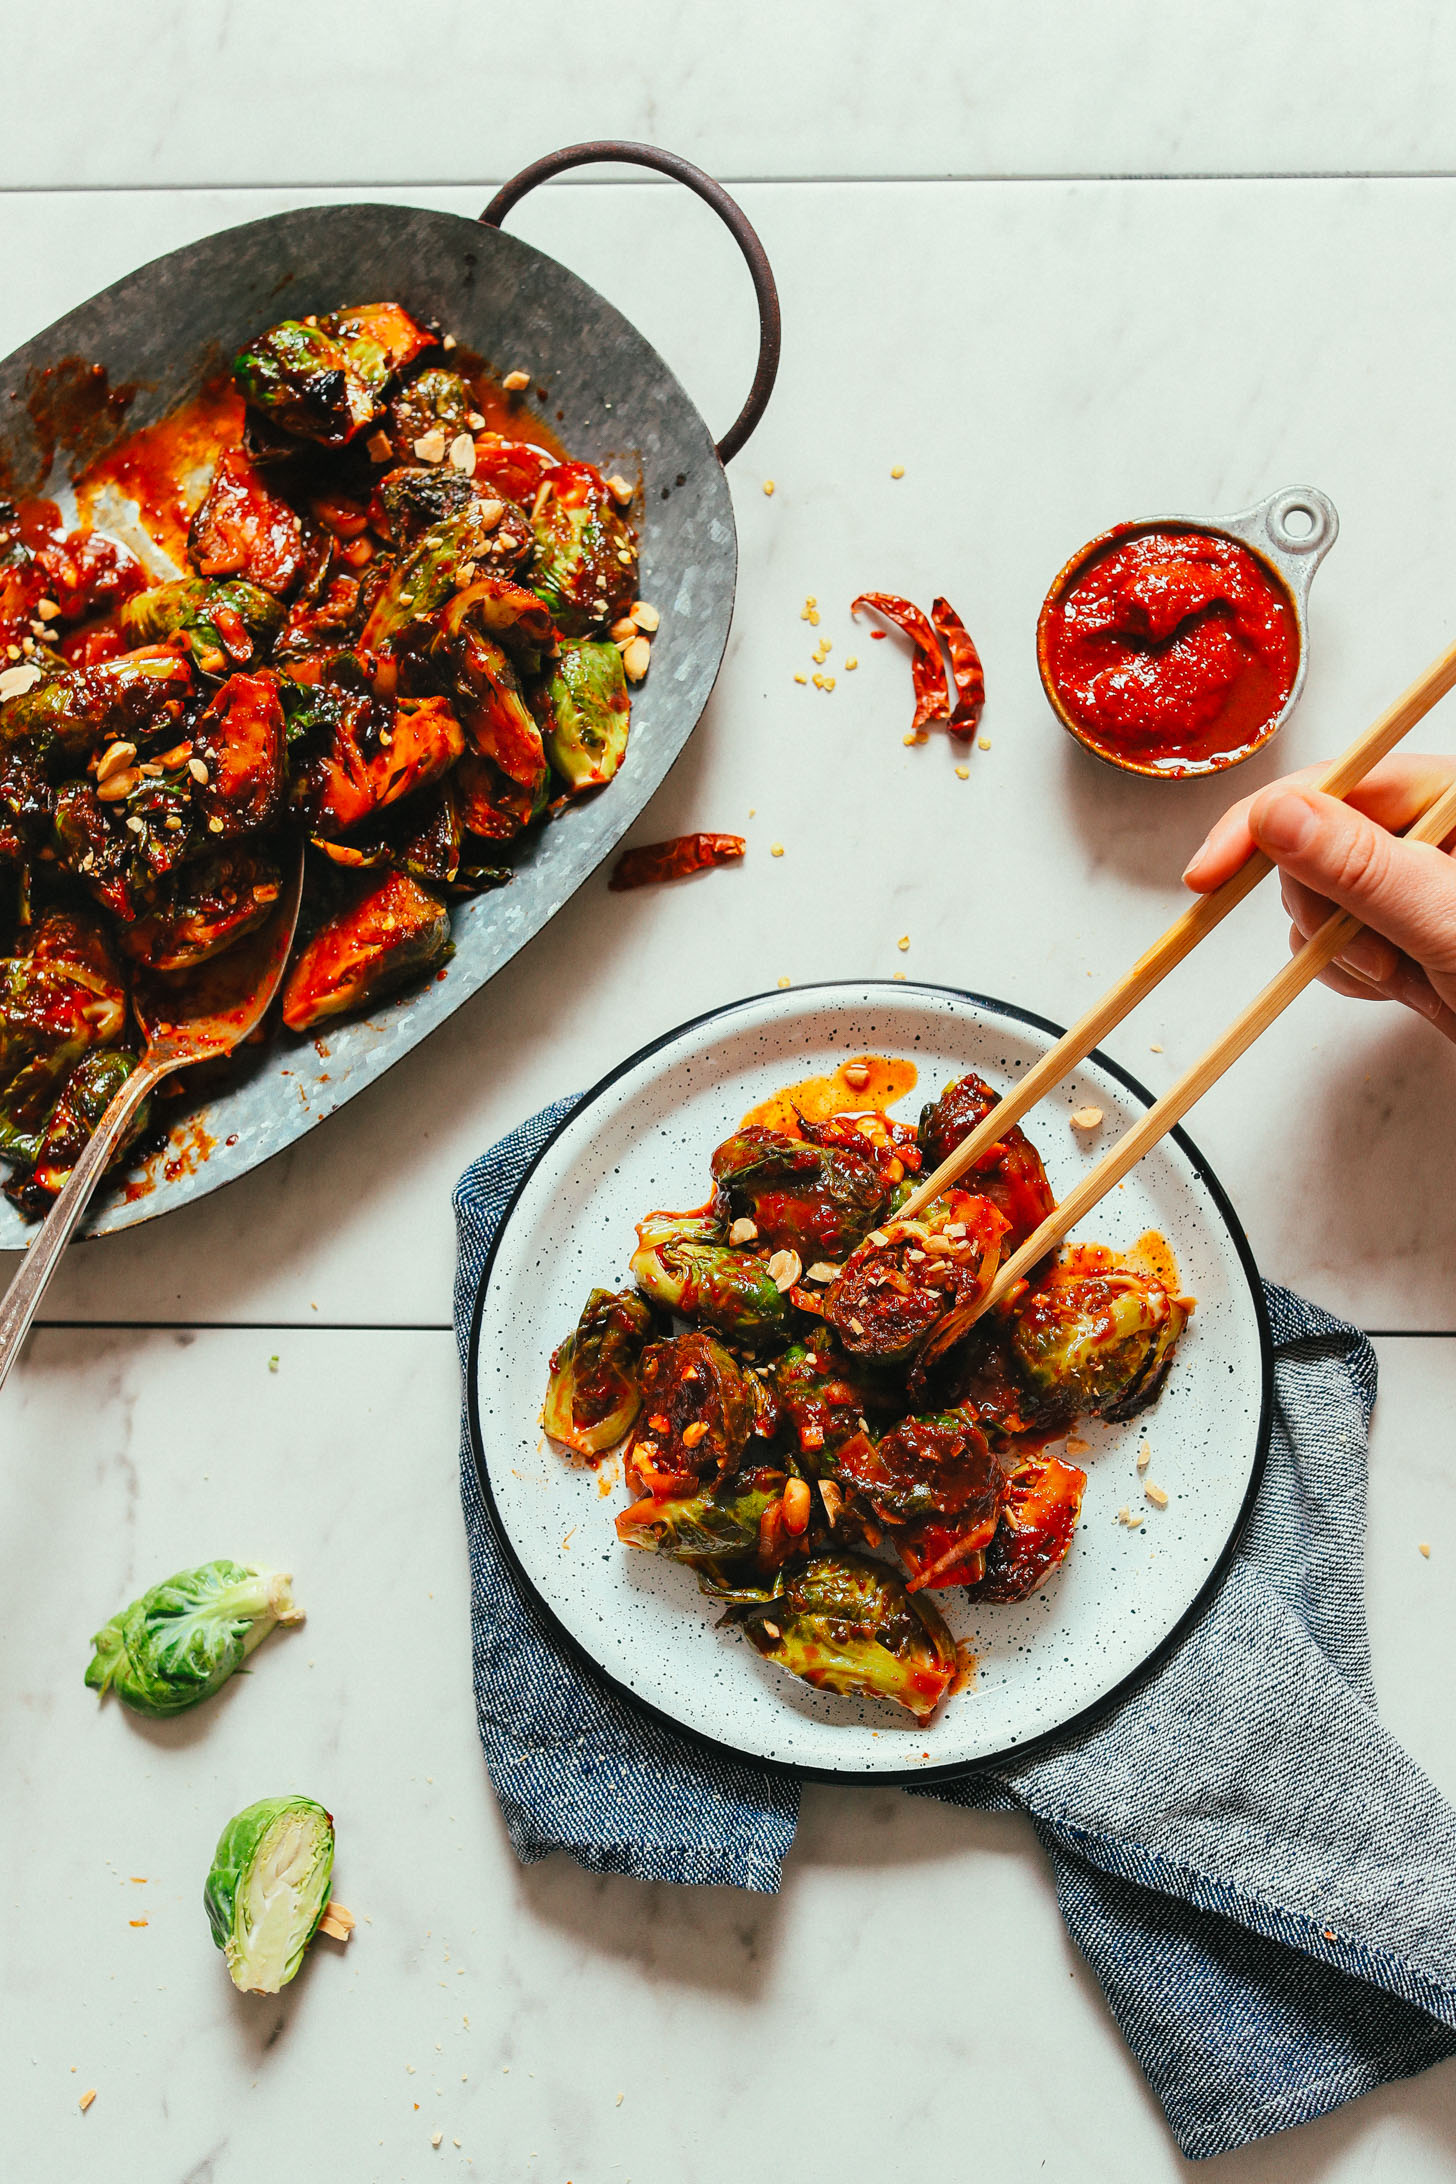 A plate and platter of our vegan Gochujang Stir-Fried Brussels Sprouts